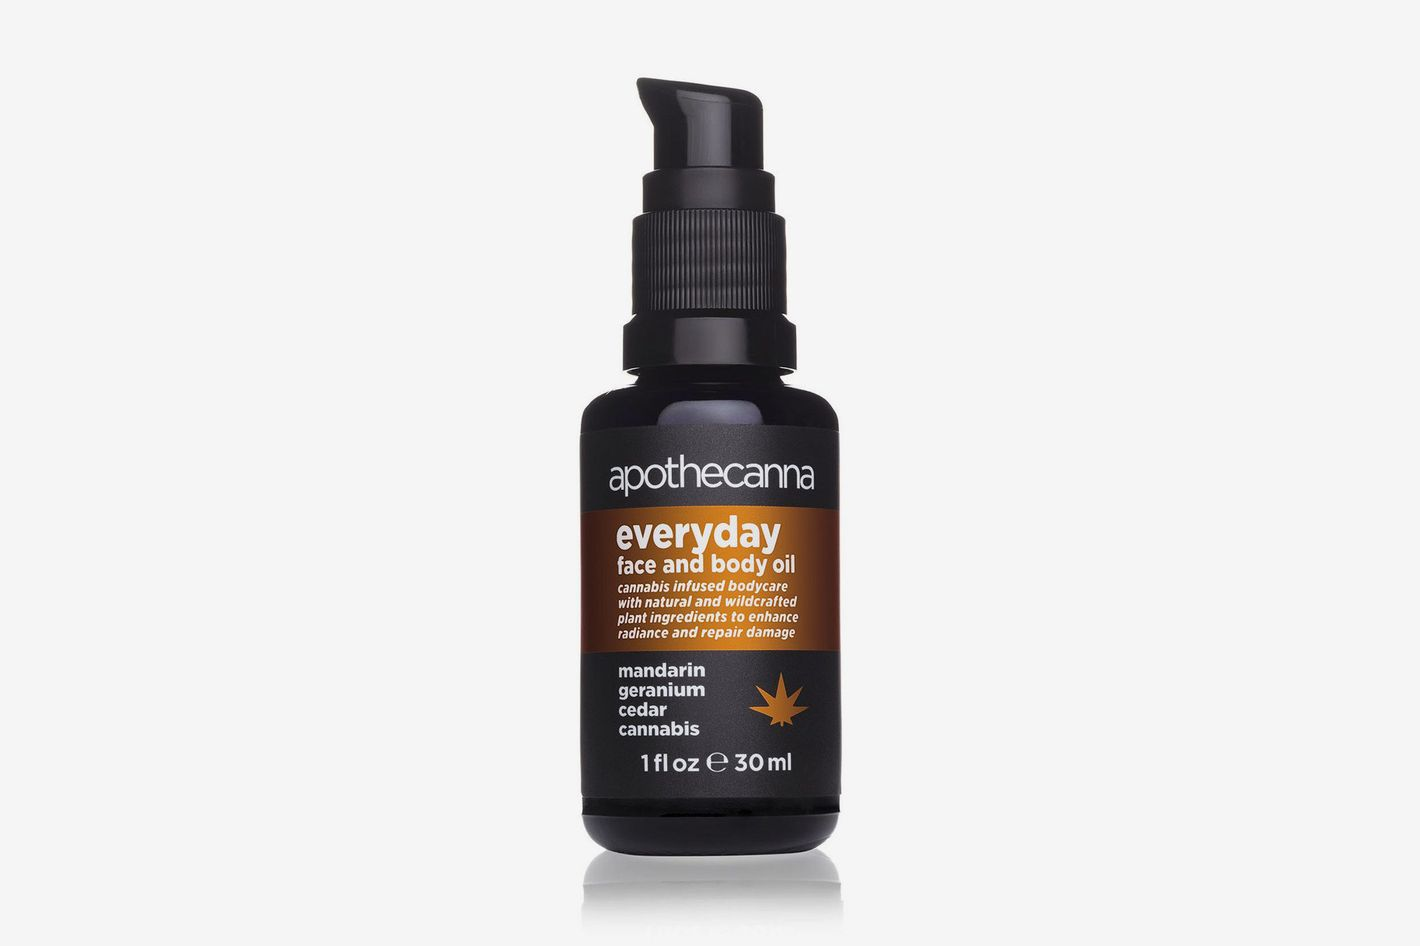 Apothecanna Everyday Face and Body Oil